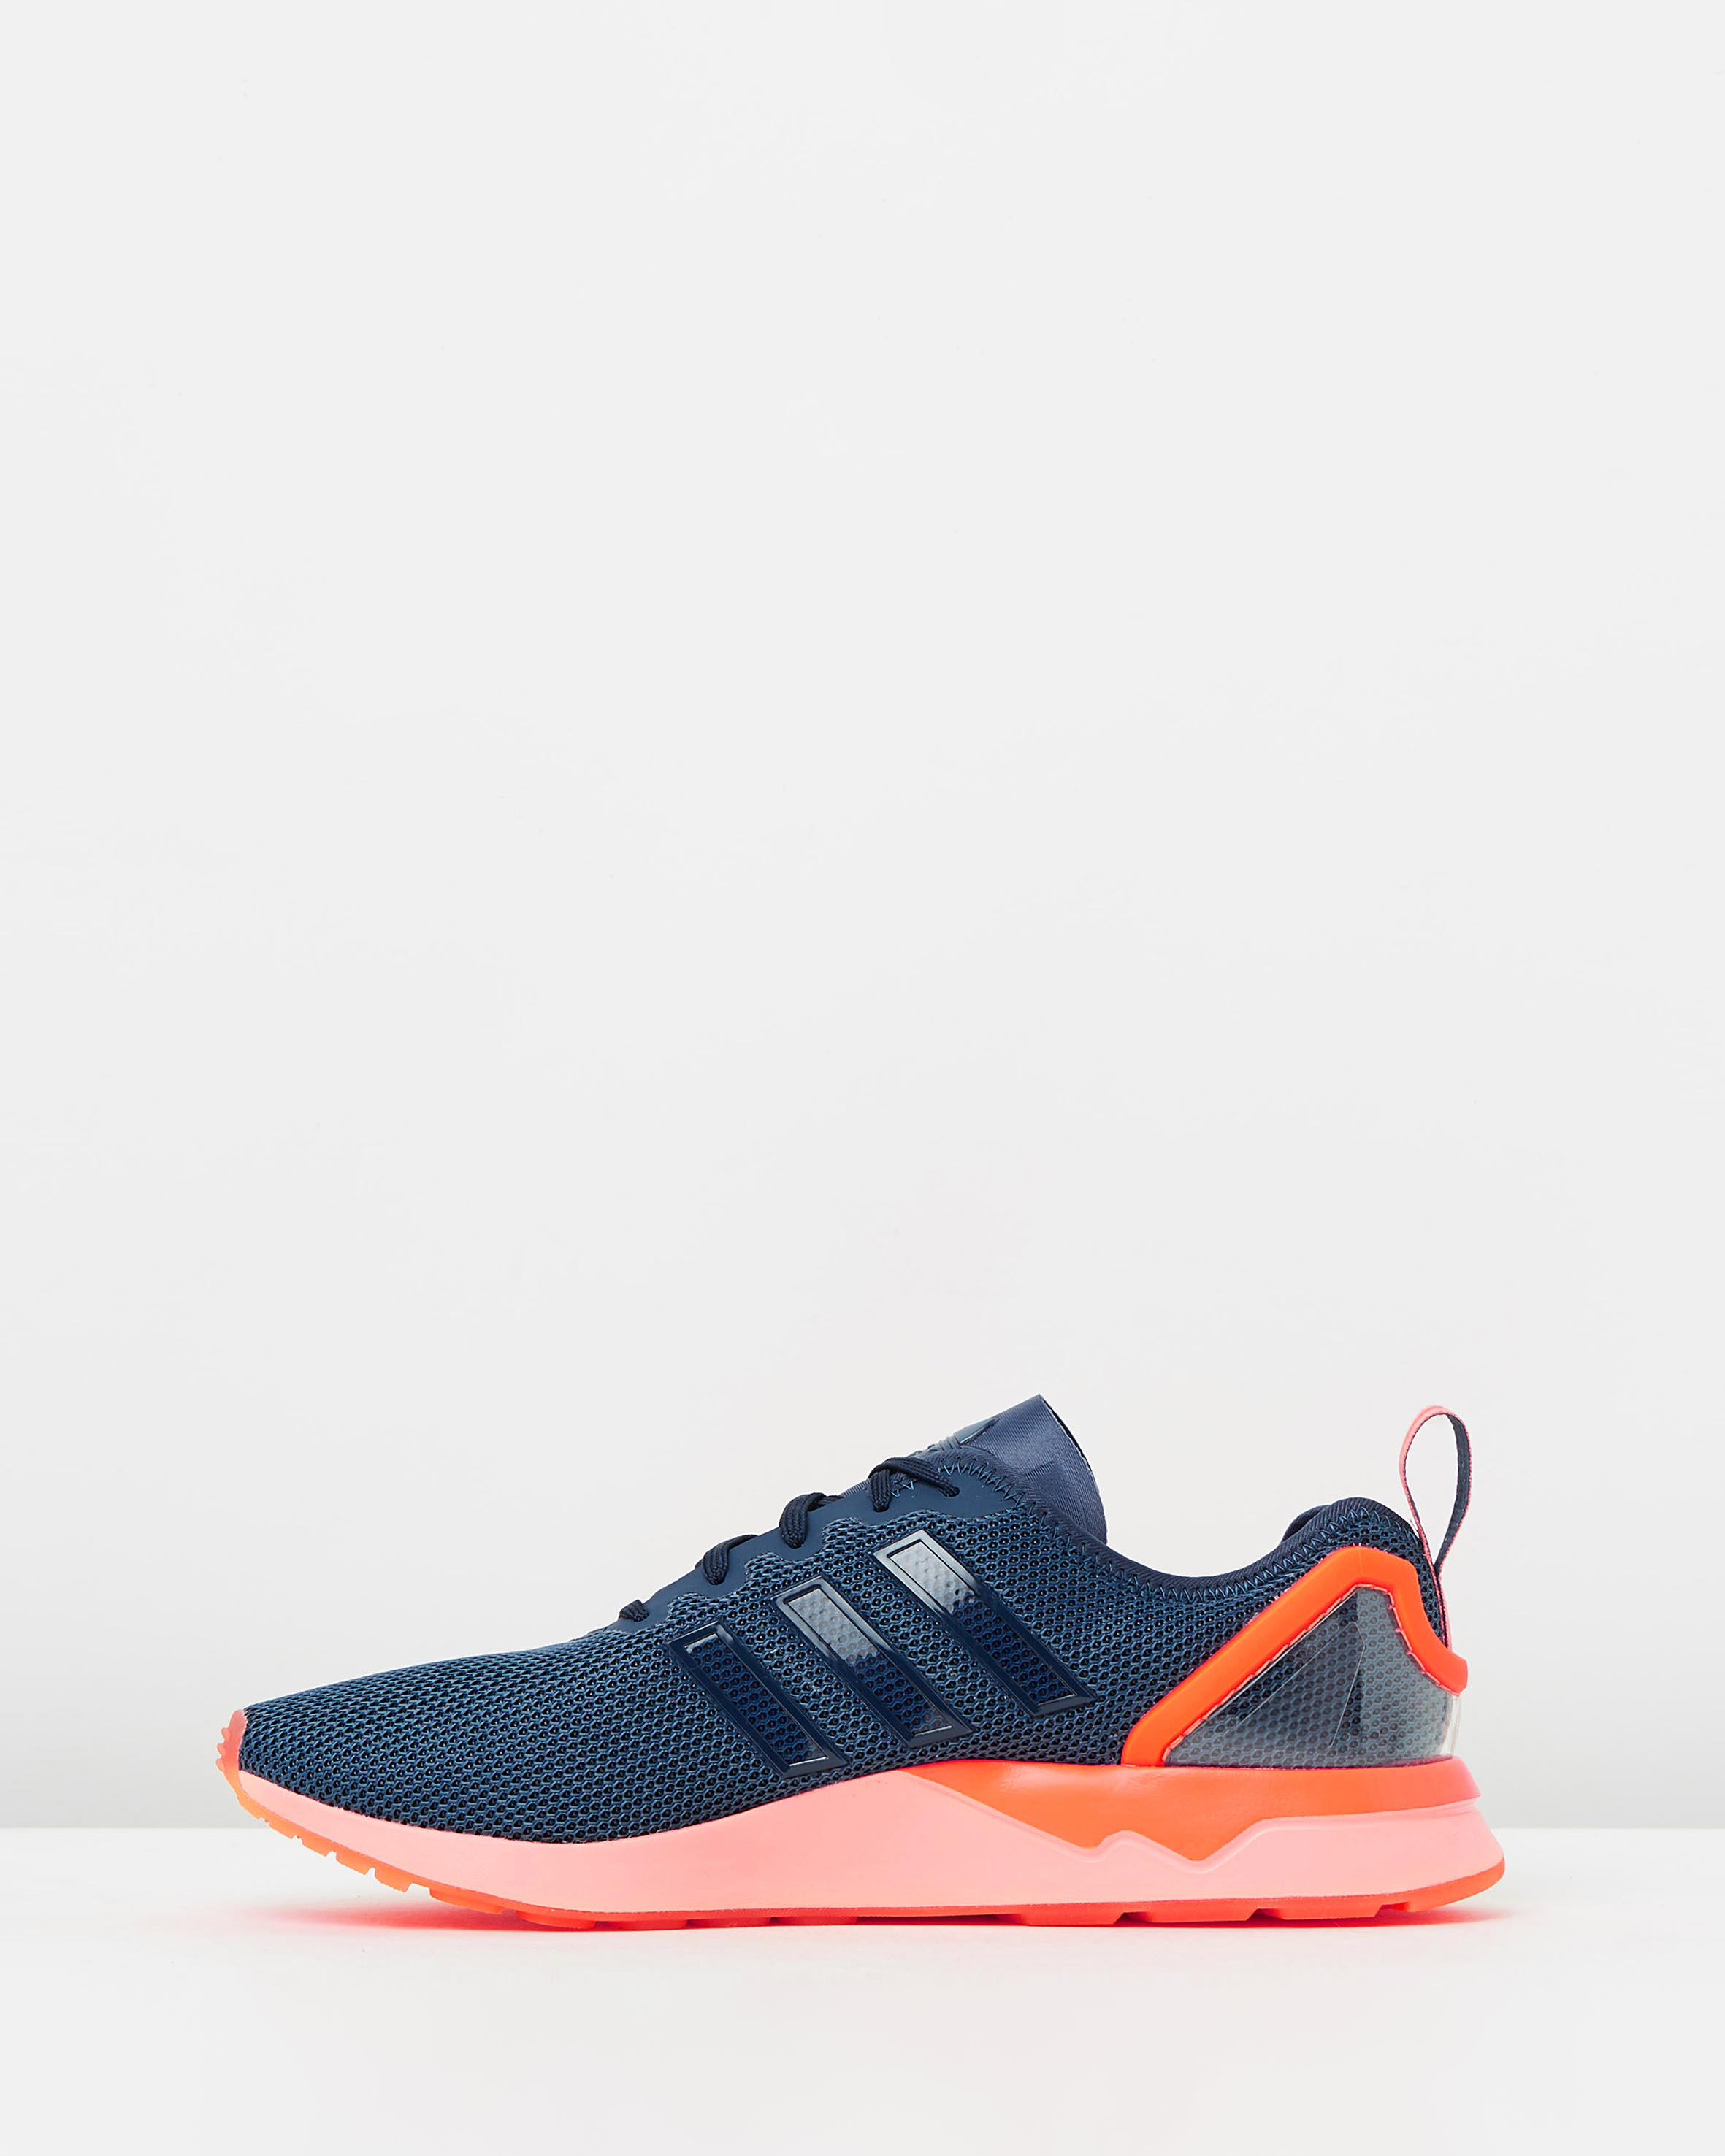 8752bdf6a Adidas Zx Flux Adv Blue Orange wallbank-lfc.co.uk